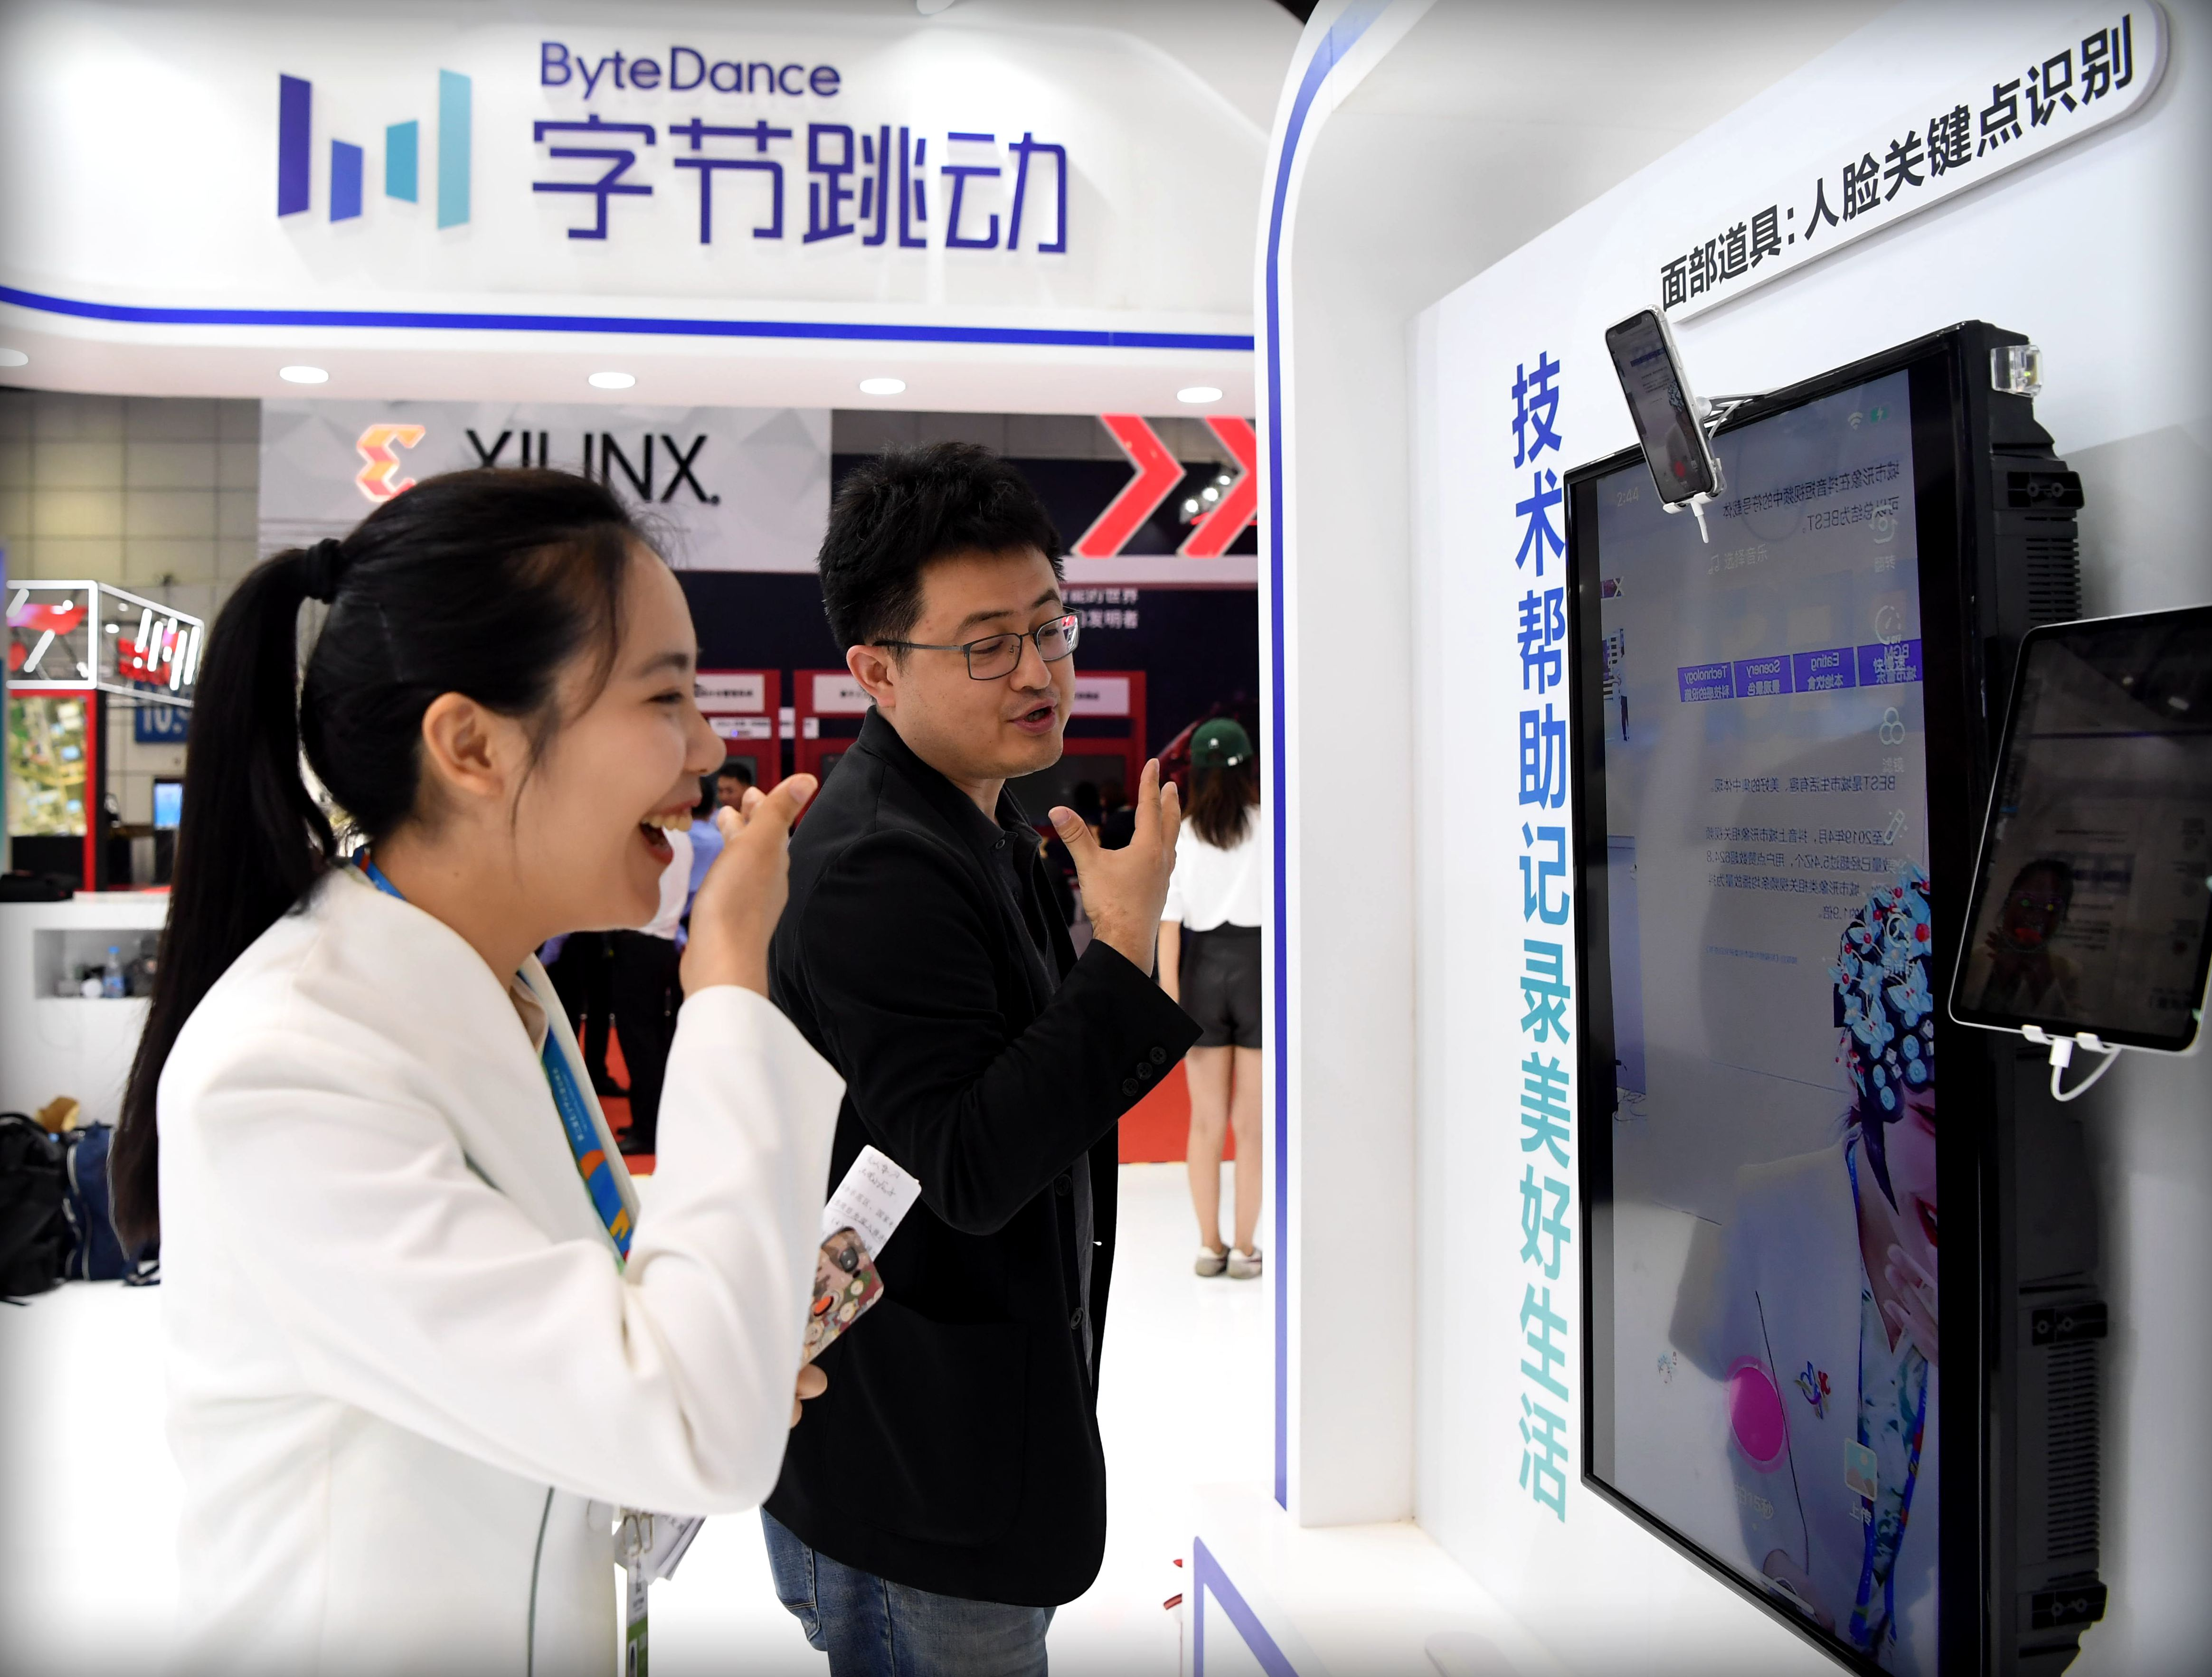 People visit a ByteDance stand